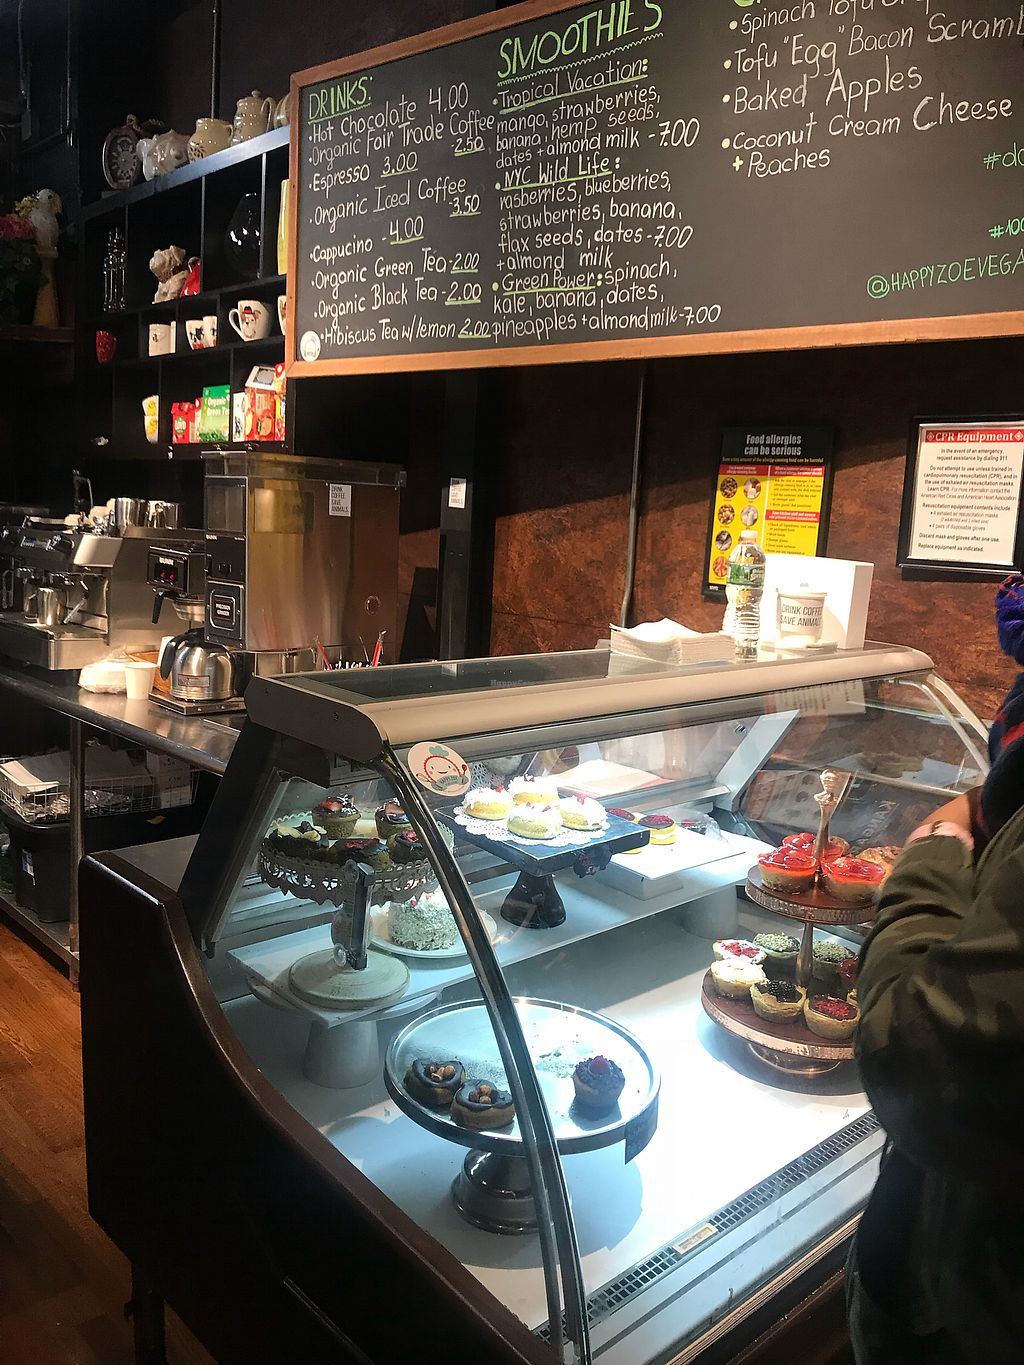 "Photo of Happy Zoe Vegan Bakery  by <a href=""/members/profile/Zelue"">Zelue</a> <br/>?? <br/> January 27, 2018  - <a href='/contact/abuse/image/107022/351667'>Report</a>"